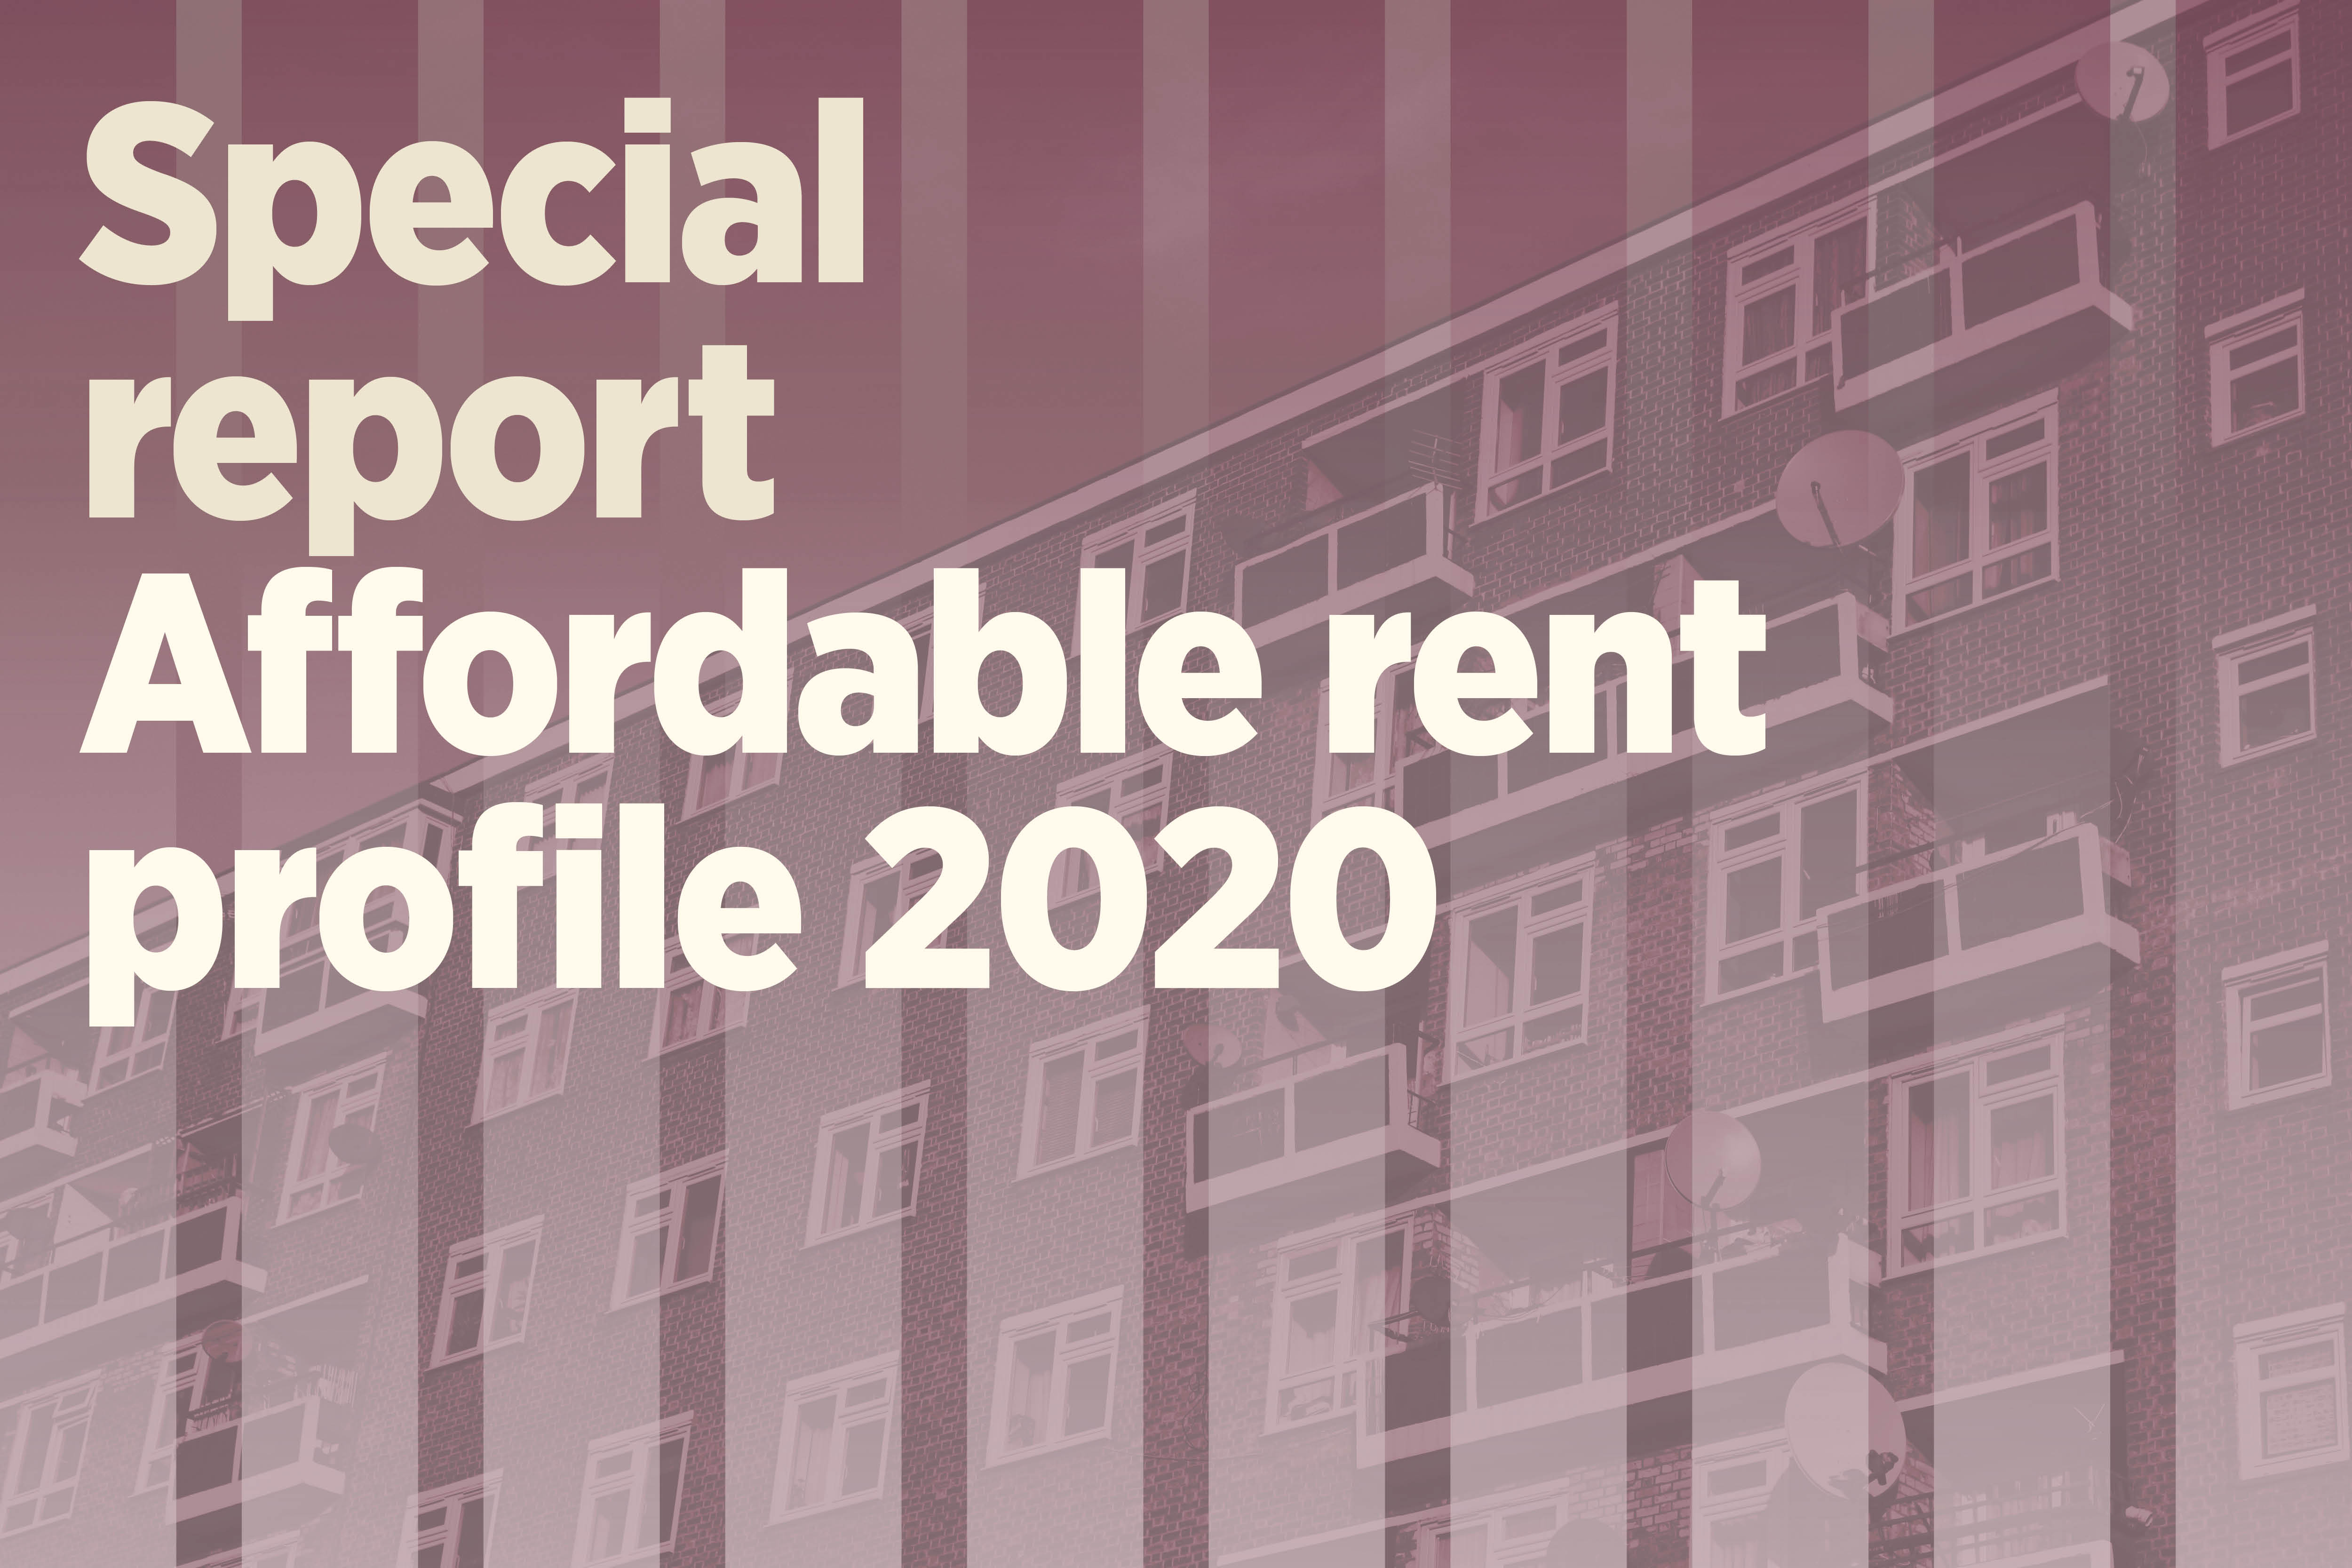 Special report: HAs' affordable rent lettings rise for first time in four years